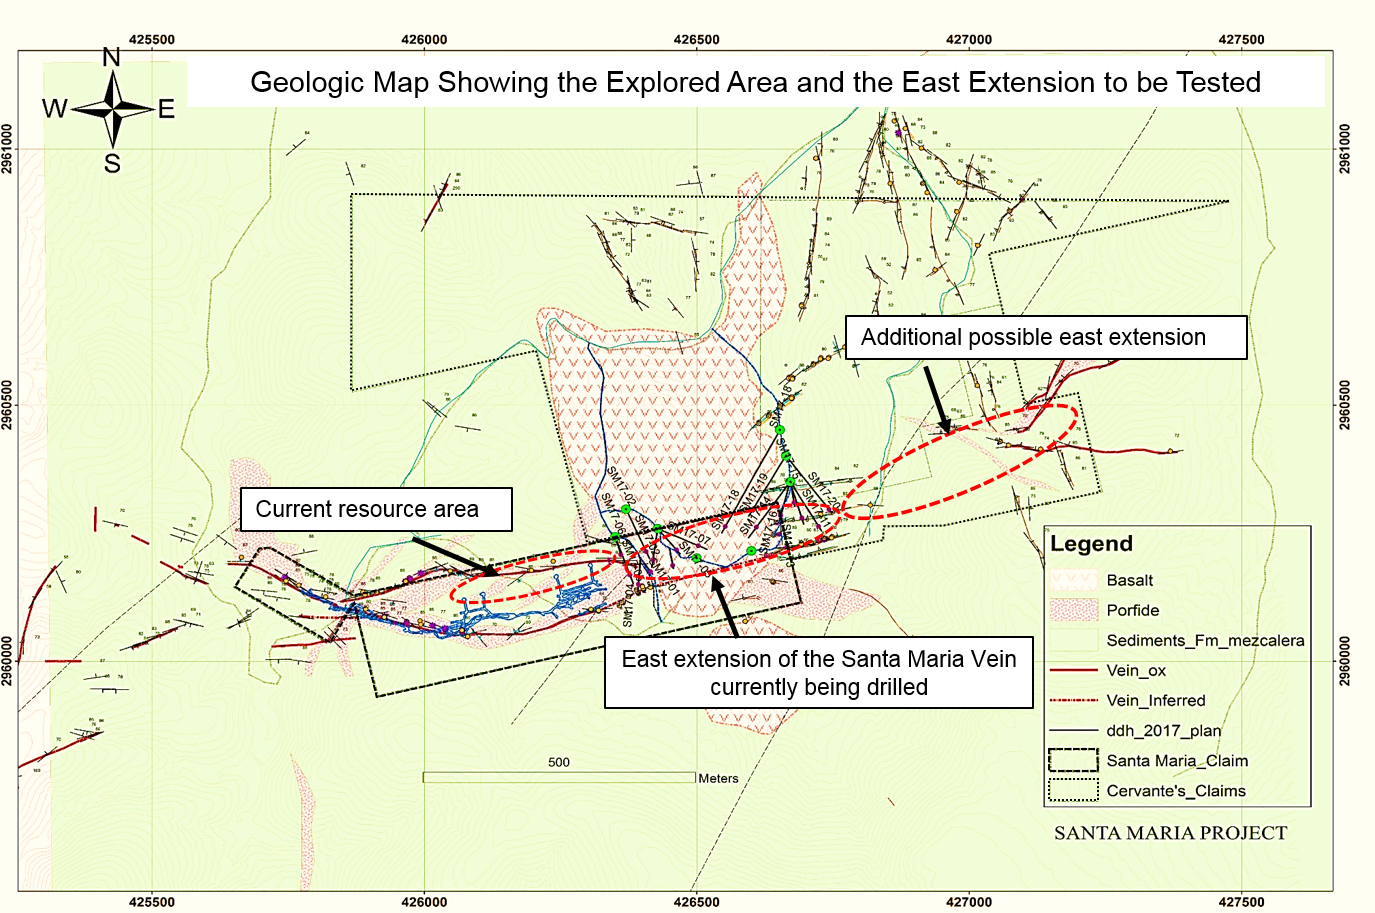 Santa Maria Geologic Map Showing East Extension to be Tested